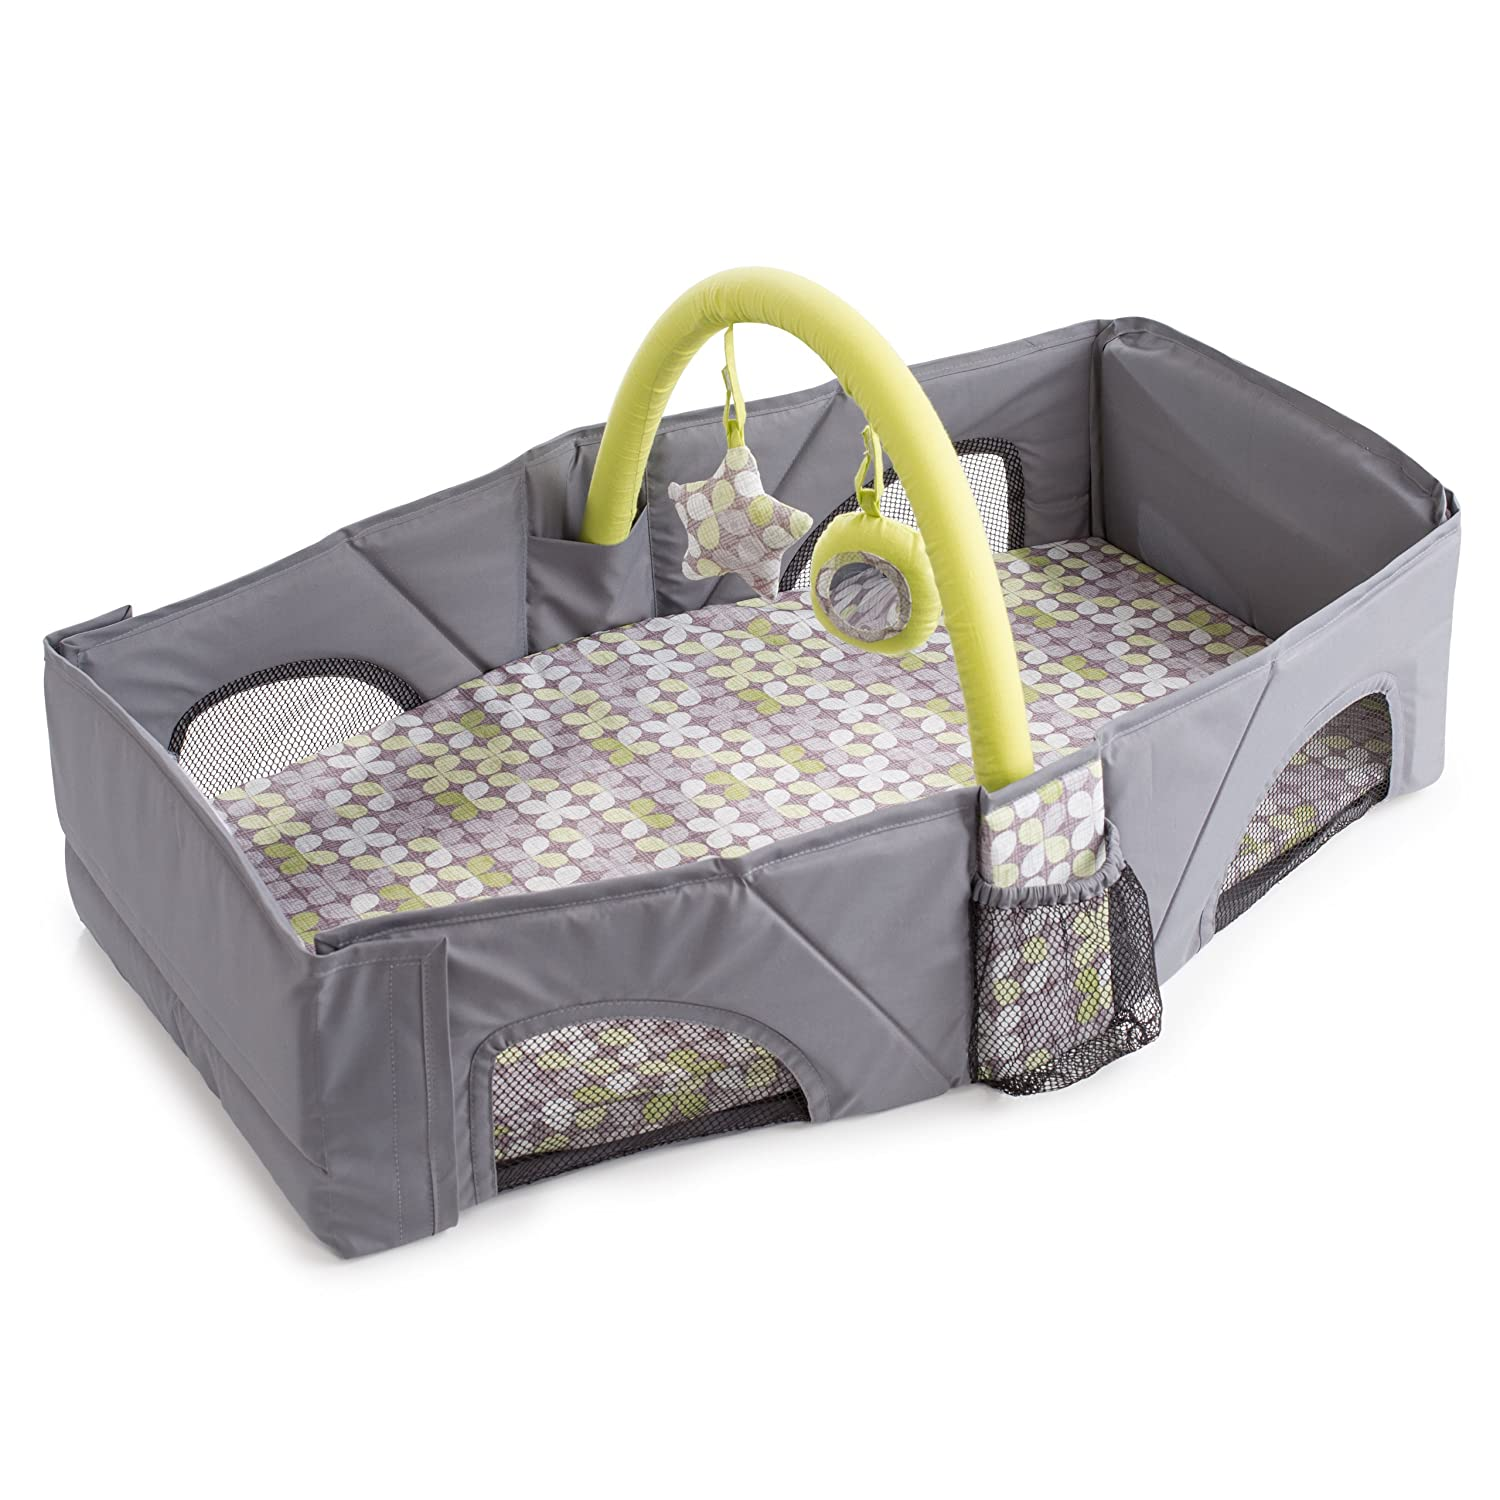 Baby bed camping - Summer Infant Travel Bed